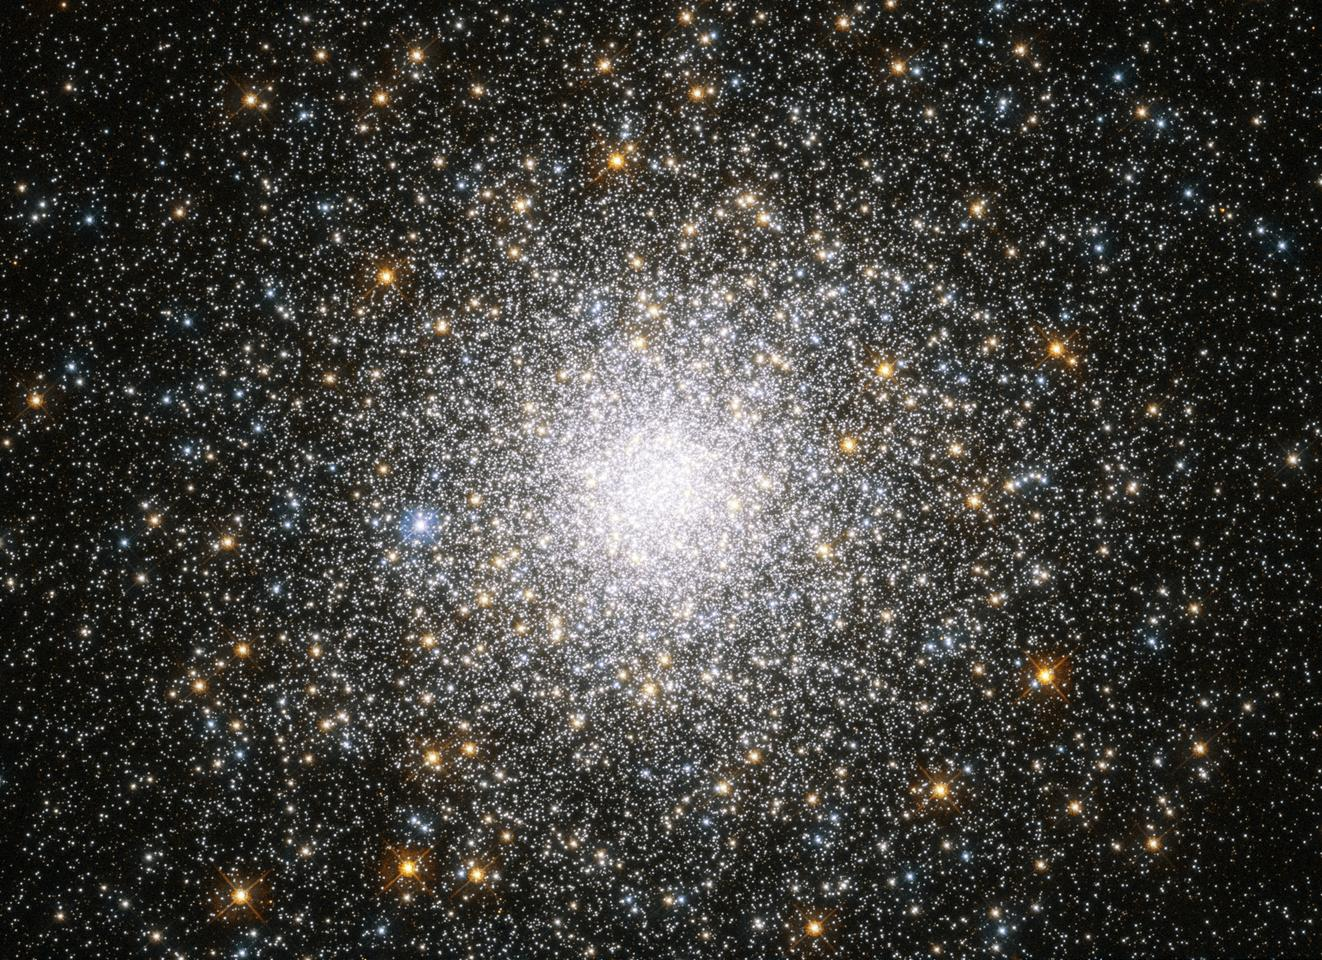 The globular cluster Messier 75 is one of the most photogenic regions in space, as made clear in this recent Hubble photo.